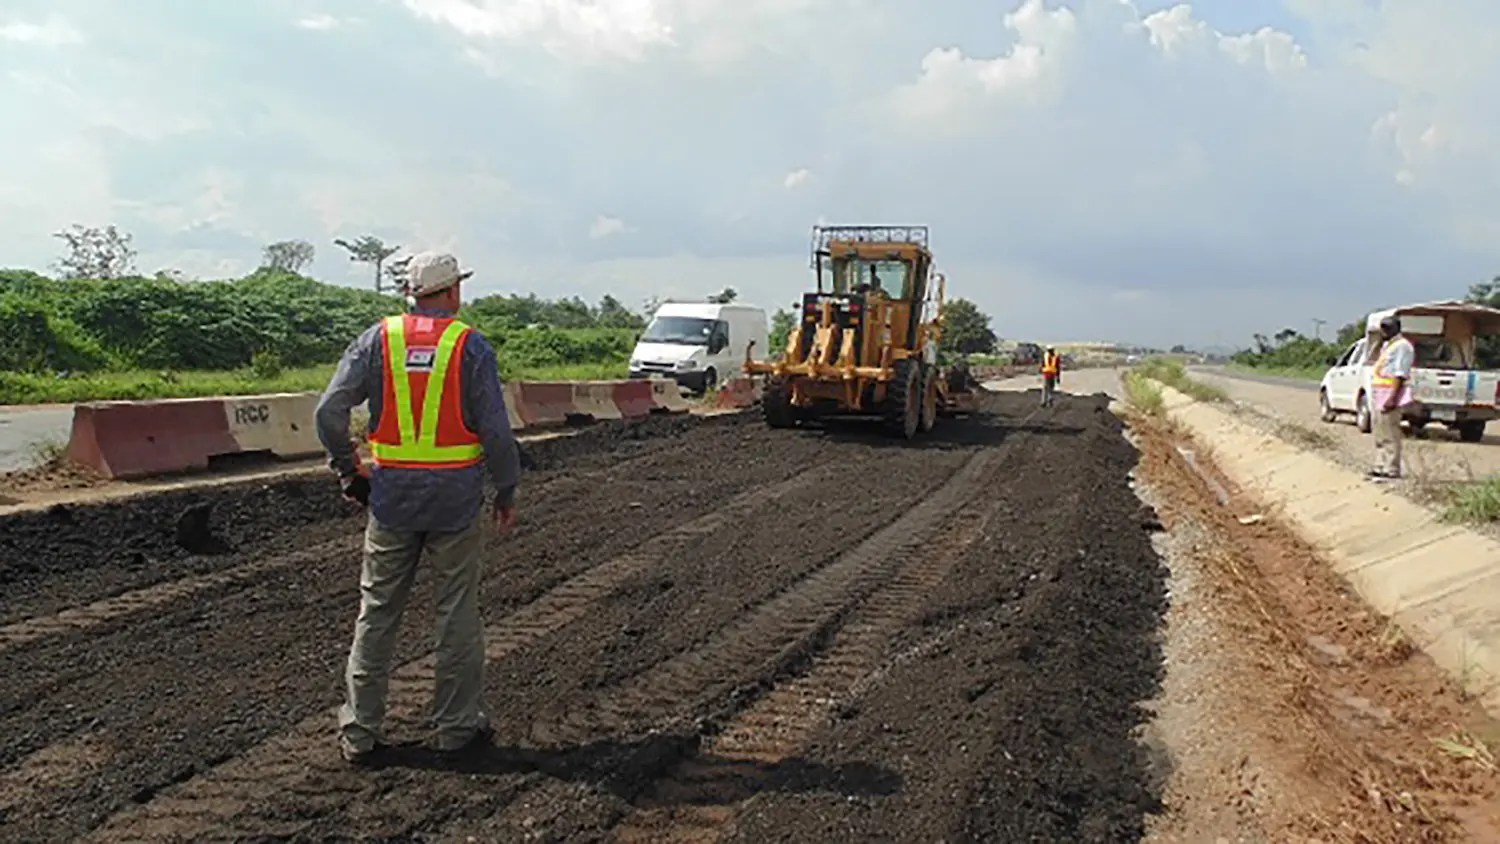 FG shifts partial closure of Lagos-Ibadan expressway to Sept 2 - Vanguard